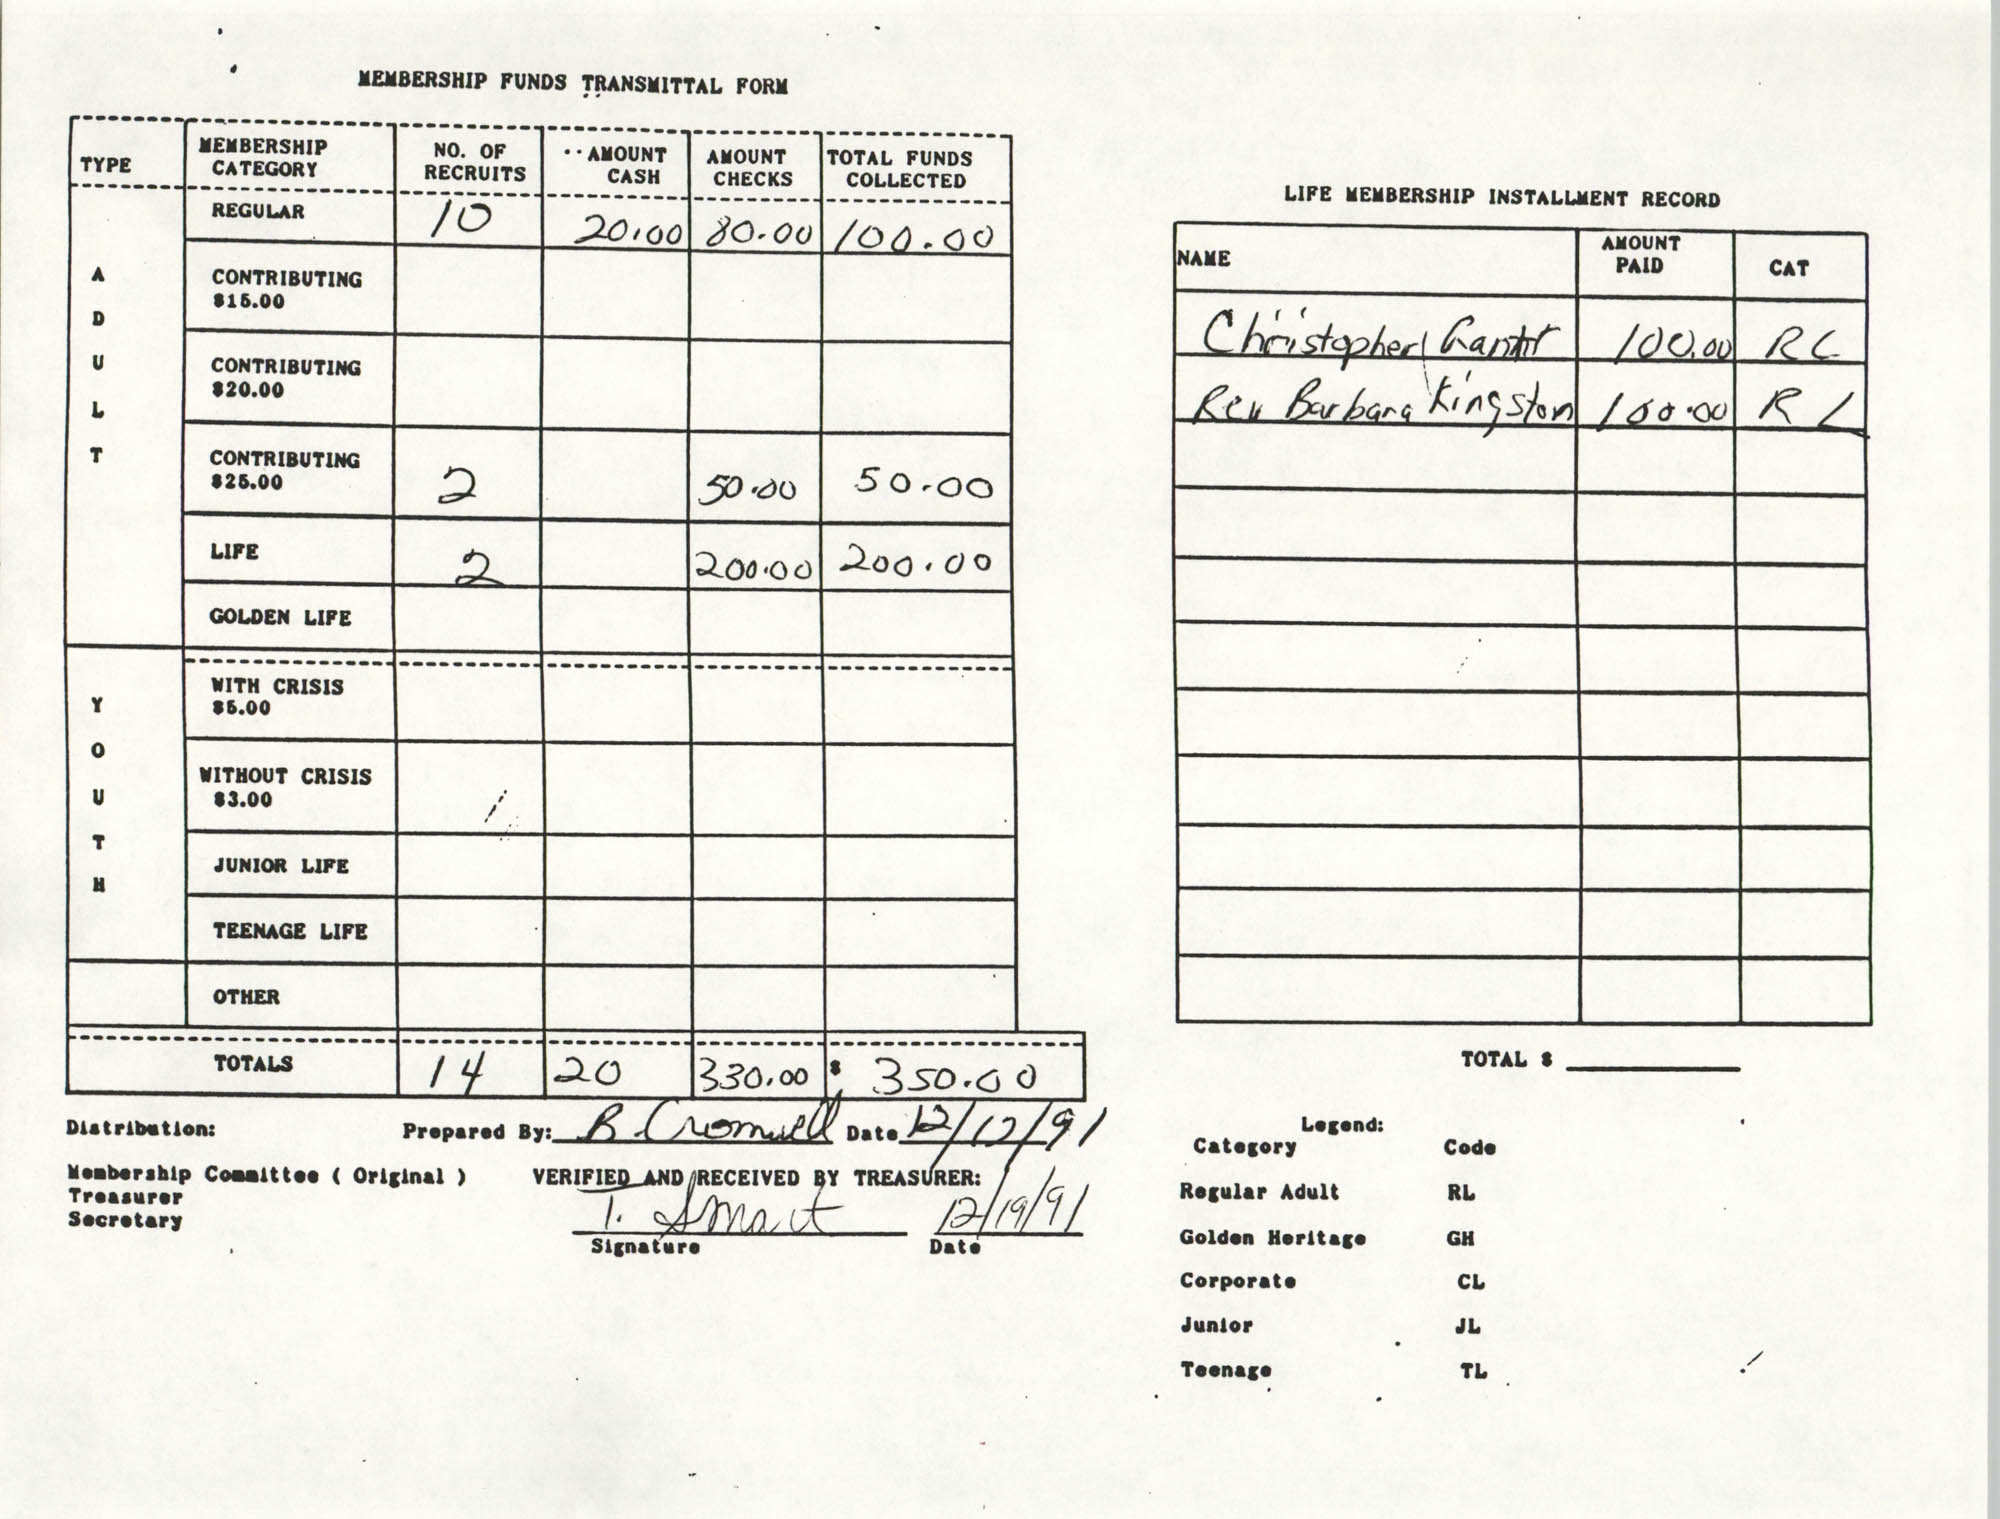 Charleston Branch of the NAACP Funds Transmittal Forms, December 1991, Page 2